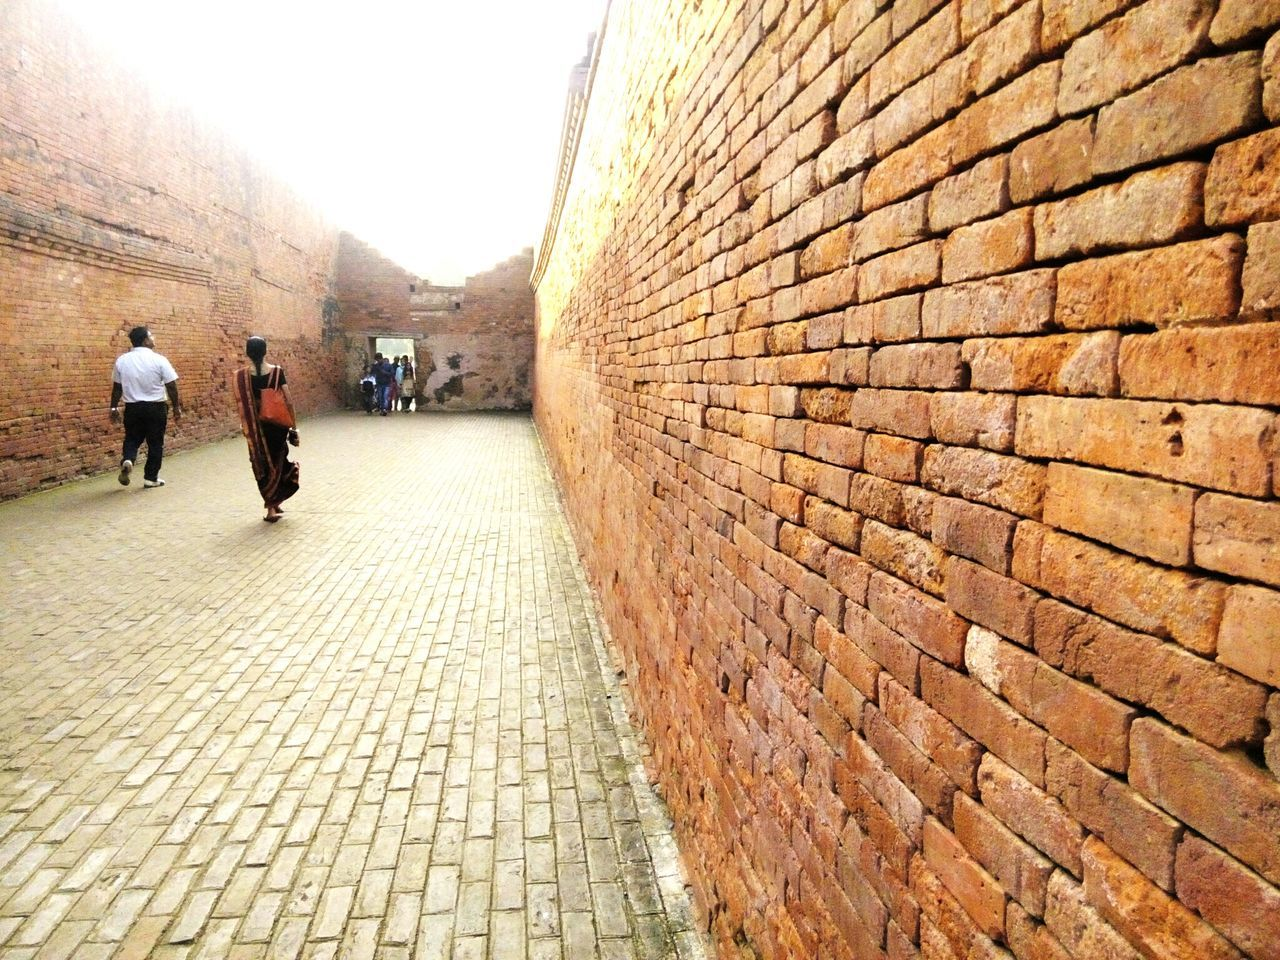 Beautifully Organized Bricks Brick Wall Built Structure Men Outdoors Real People Architecture Day Brickswork Brickstreet Brick Work Bricks Collection Historical Architecture Historic Building